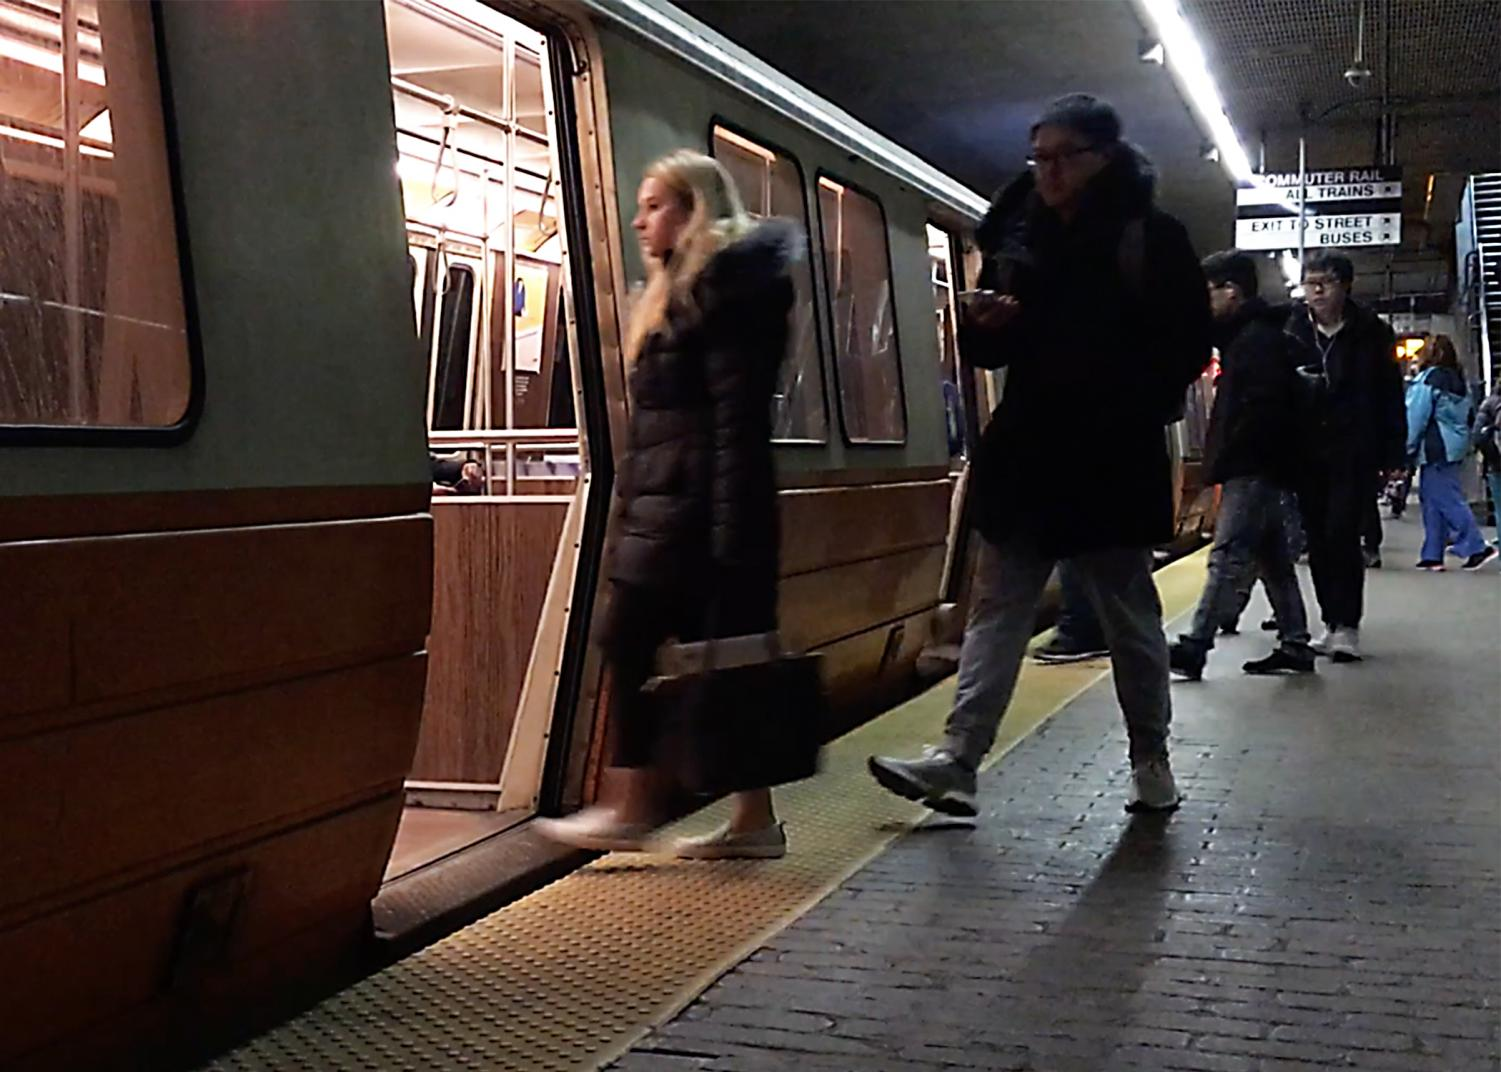 Commuters grapple with implications of an MBTA fare hike.